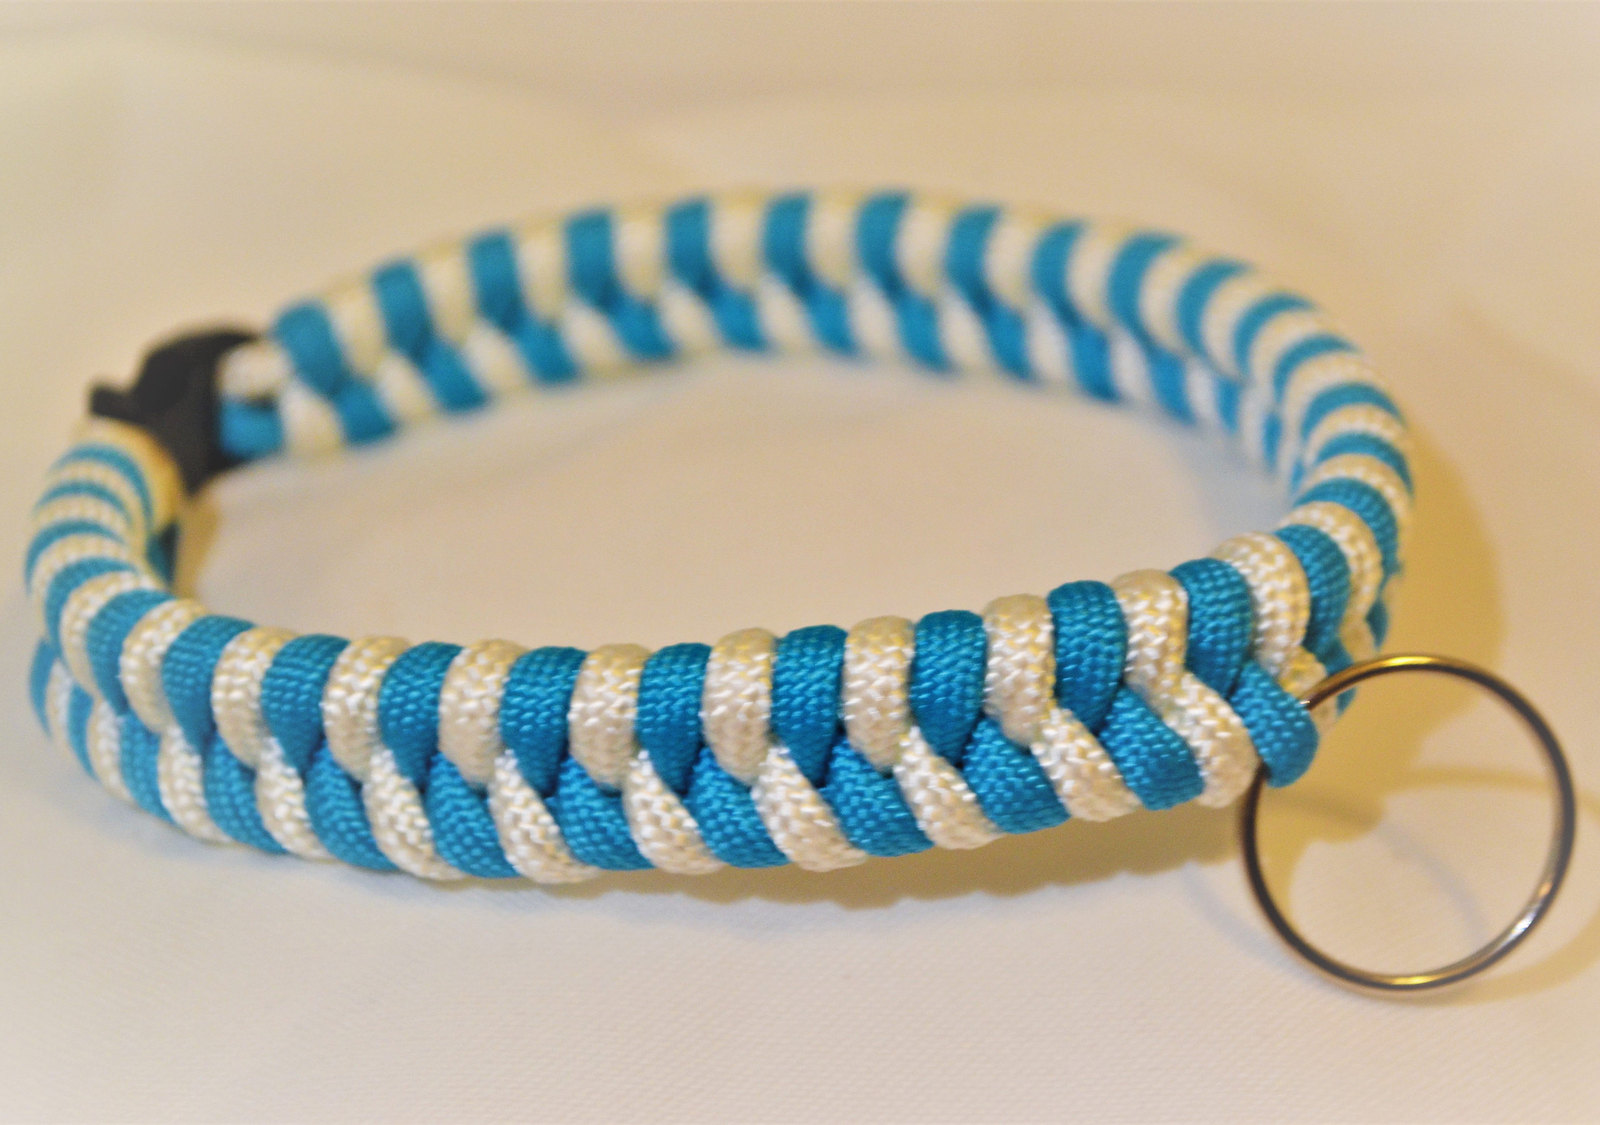 "Primary image for Paracord 550 Dog Collar Teal Blue & White Fish Tail Design 12 1/2"" Black Quick R"